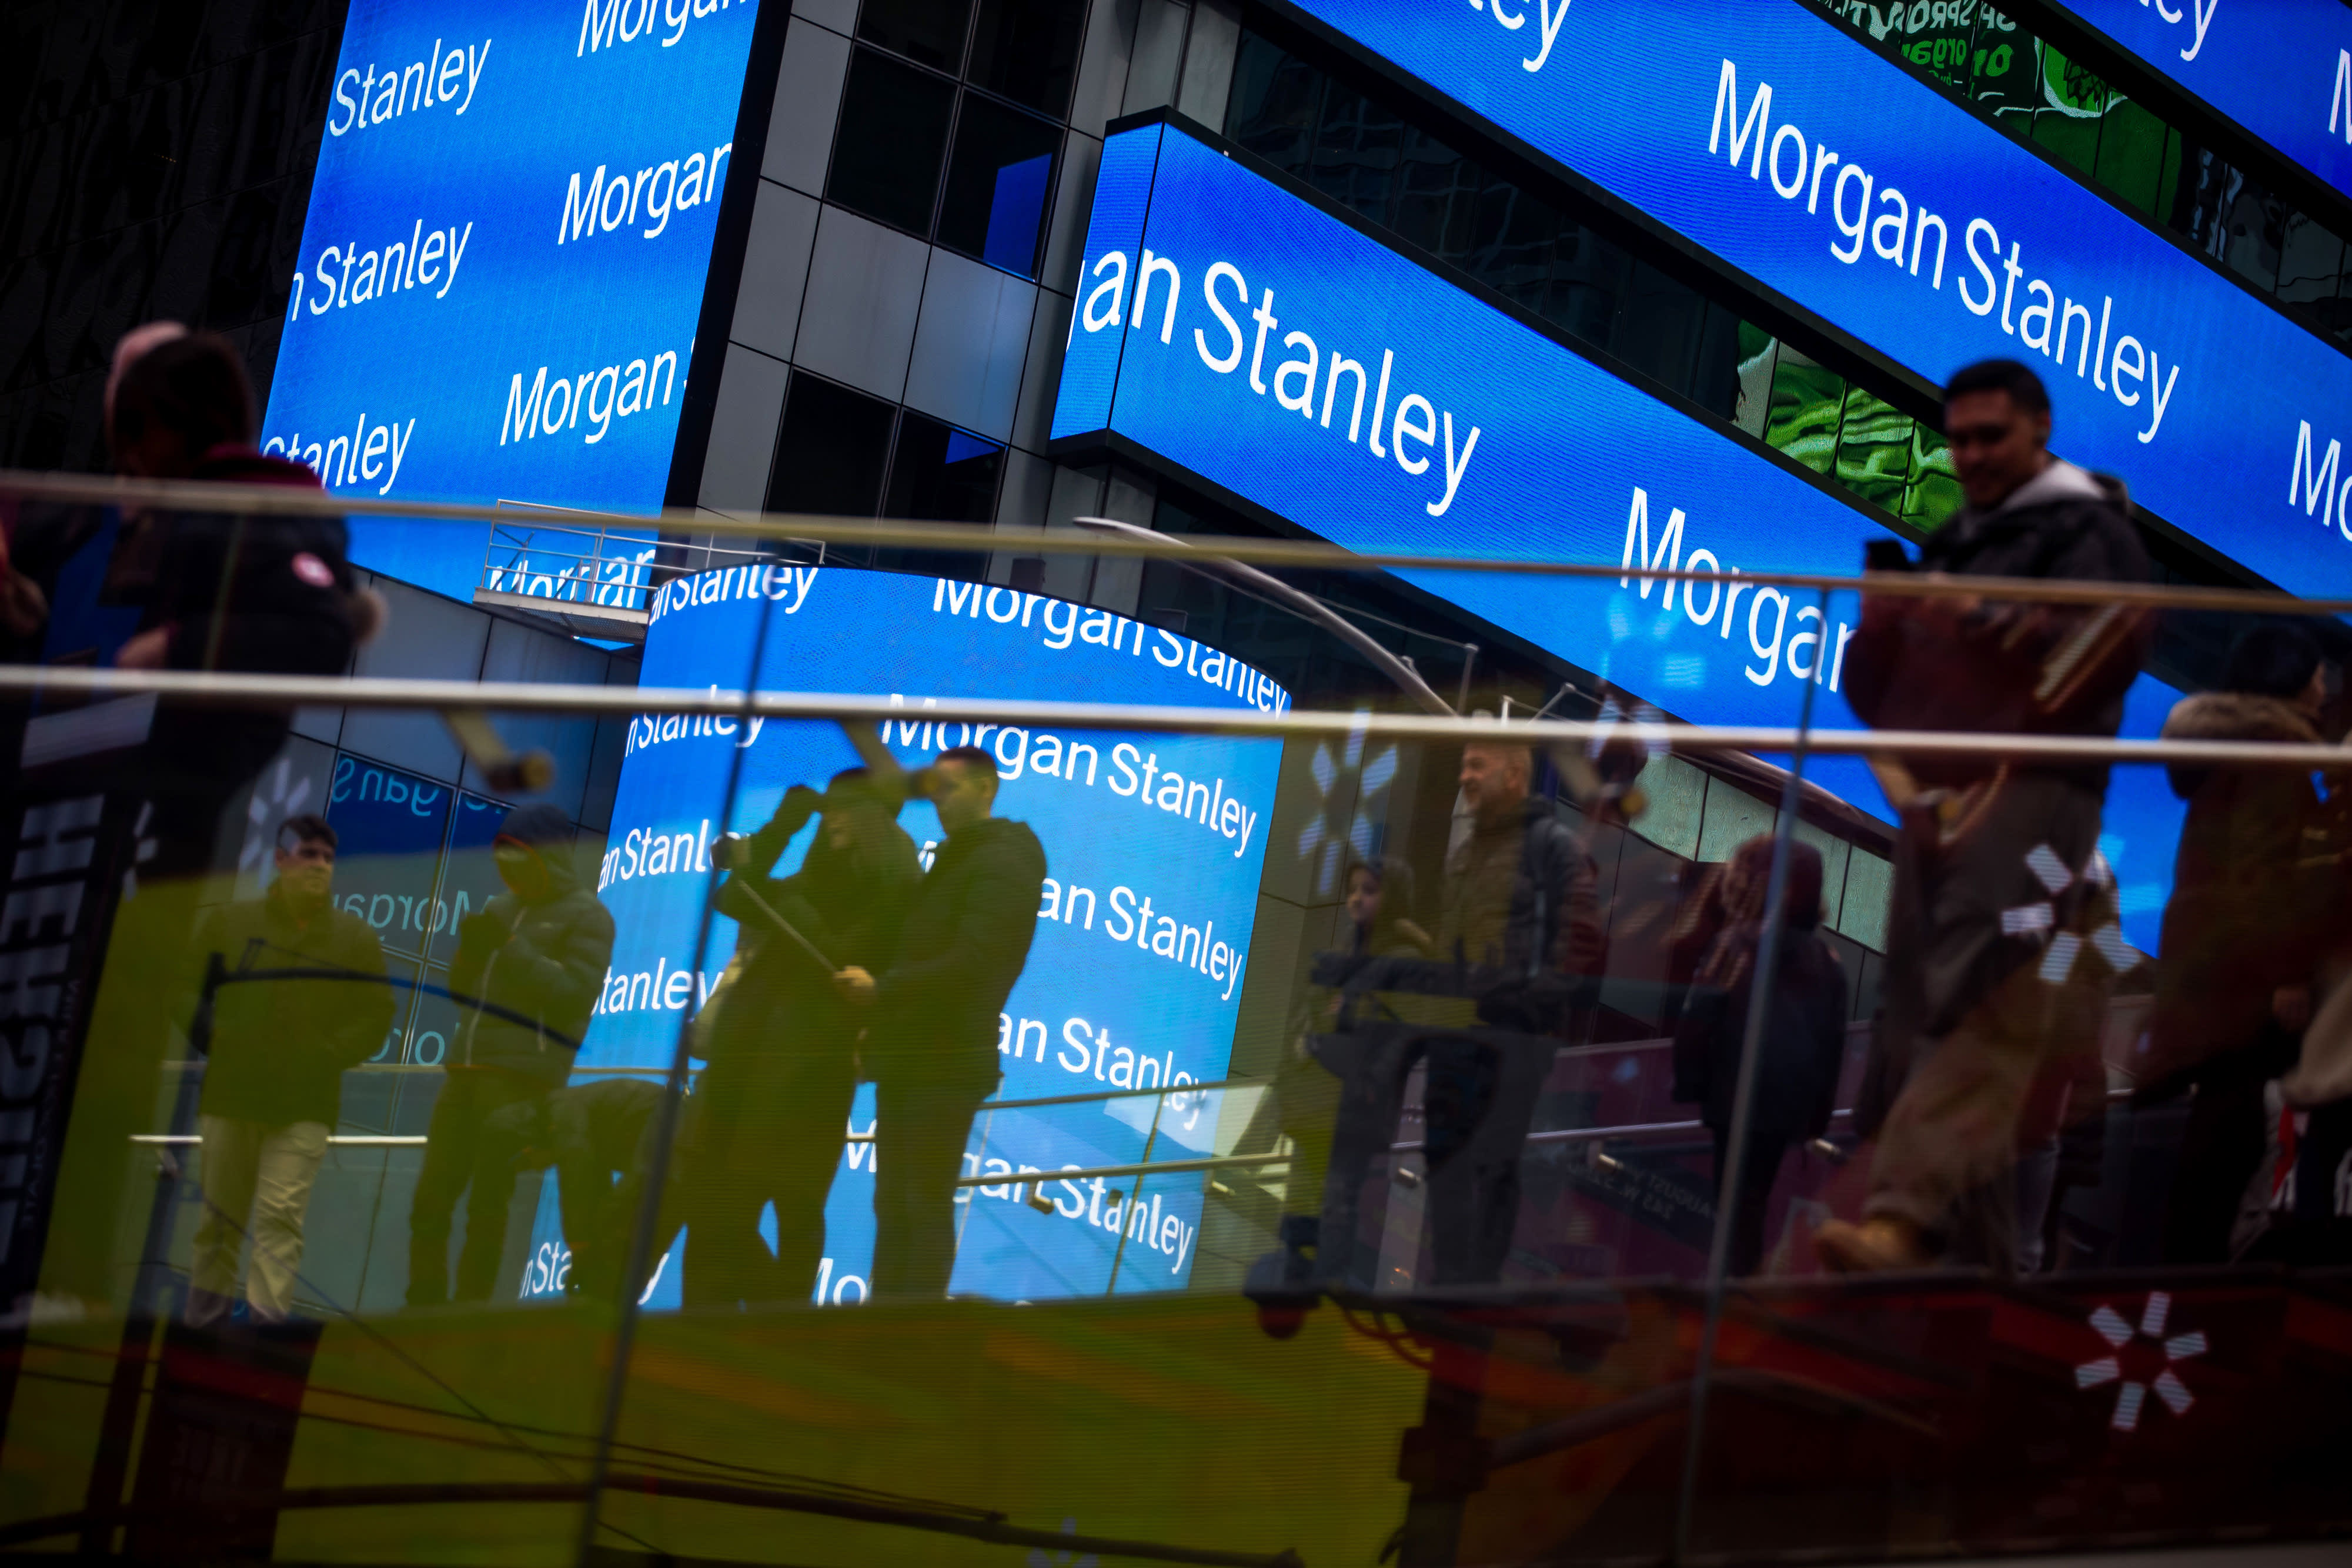 Morgan Stanley is bringing traders back to NY headquarters next month